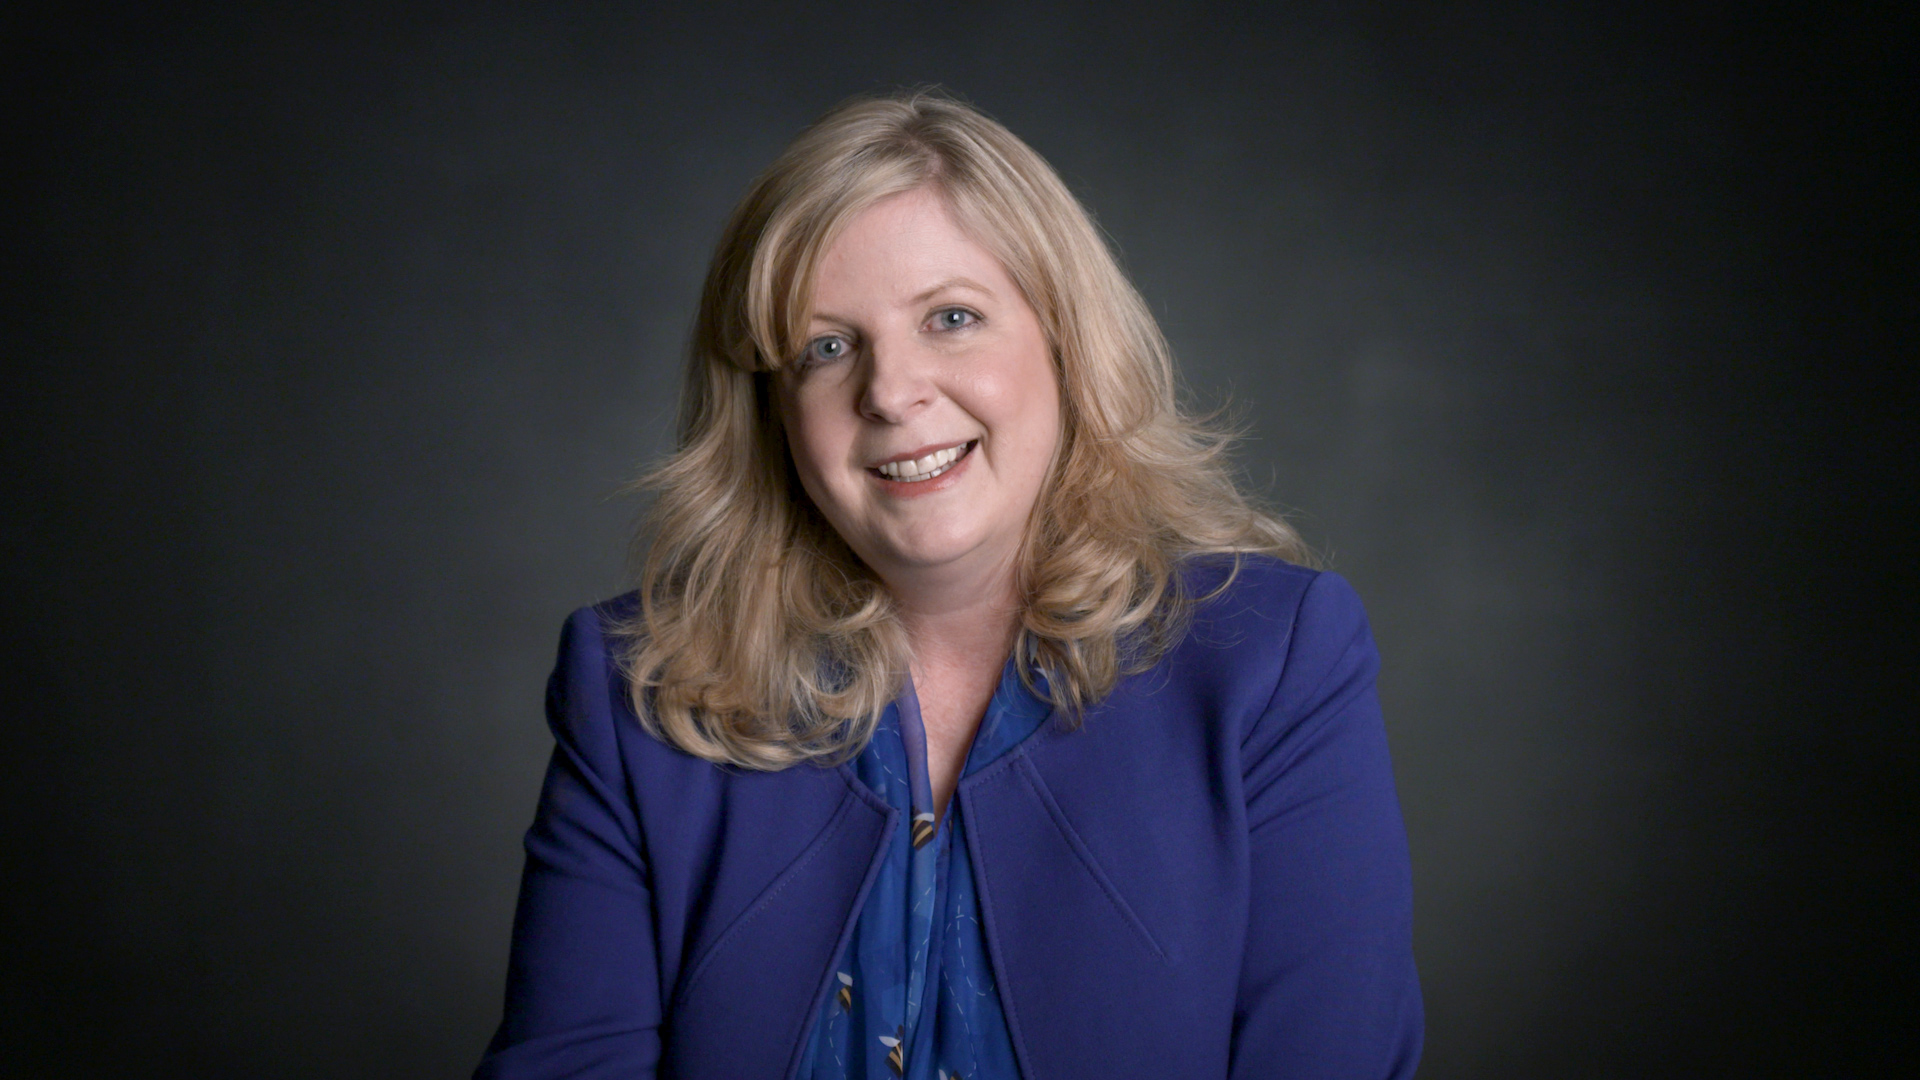 Paige Kimble   Executive Director & 1981 Champion of the Scripps National Spelling Bee